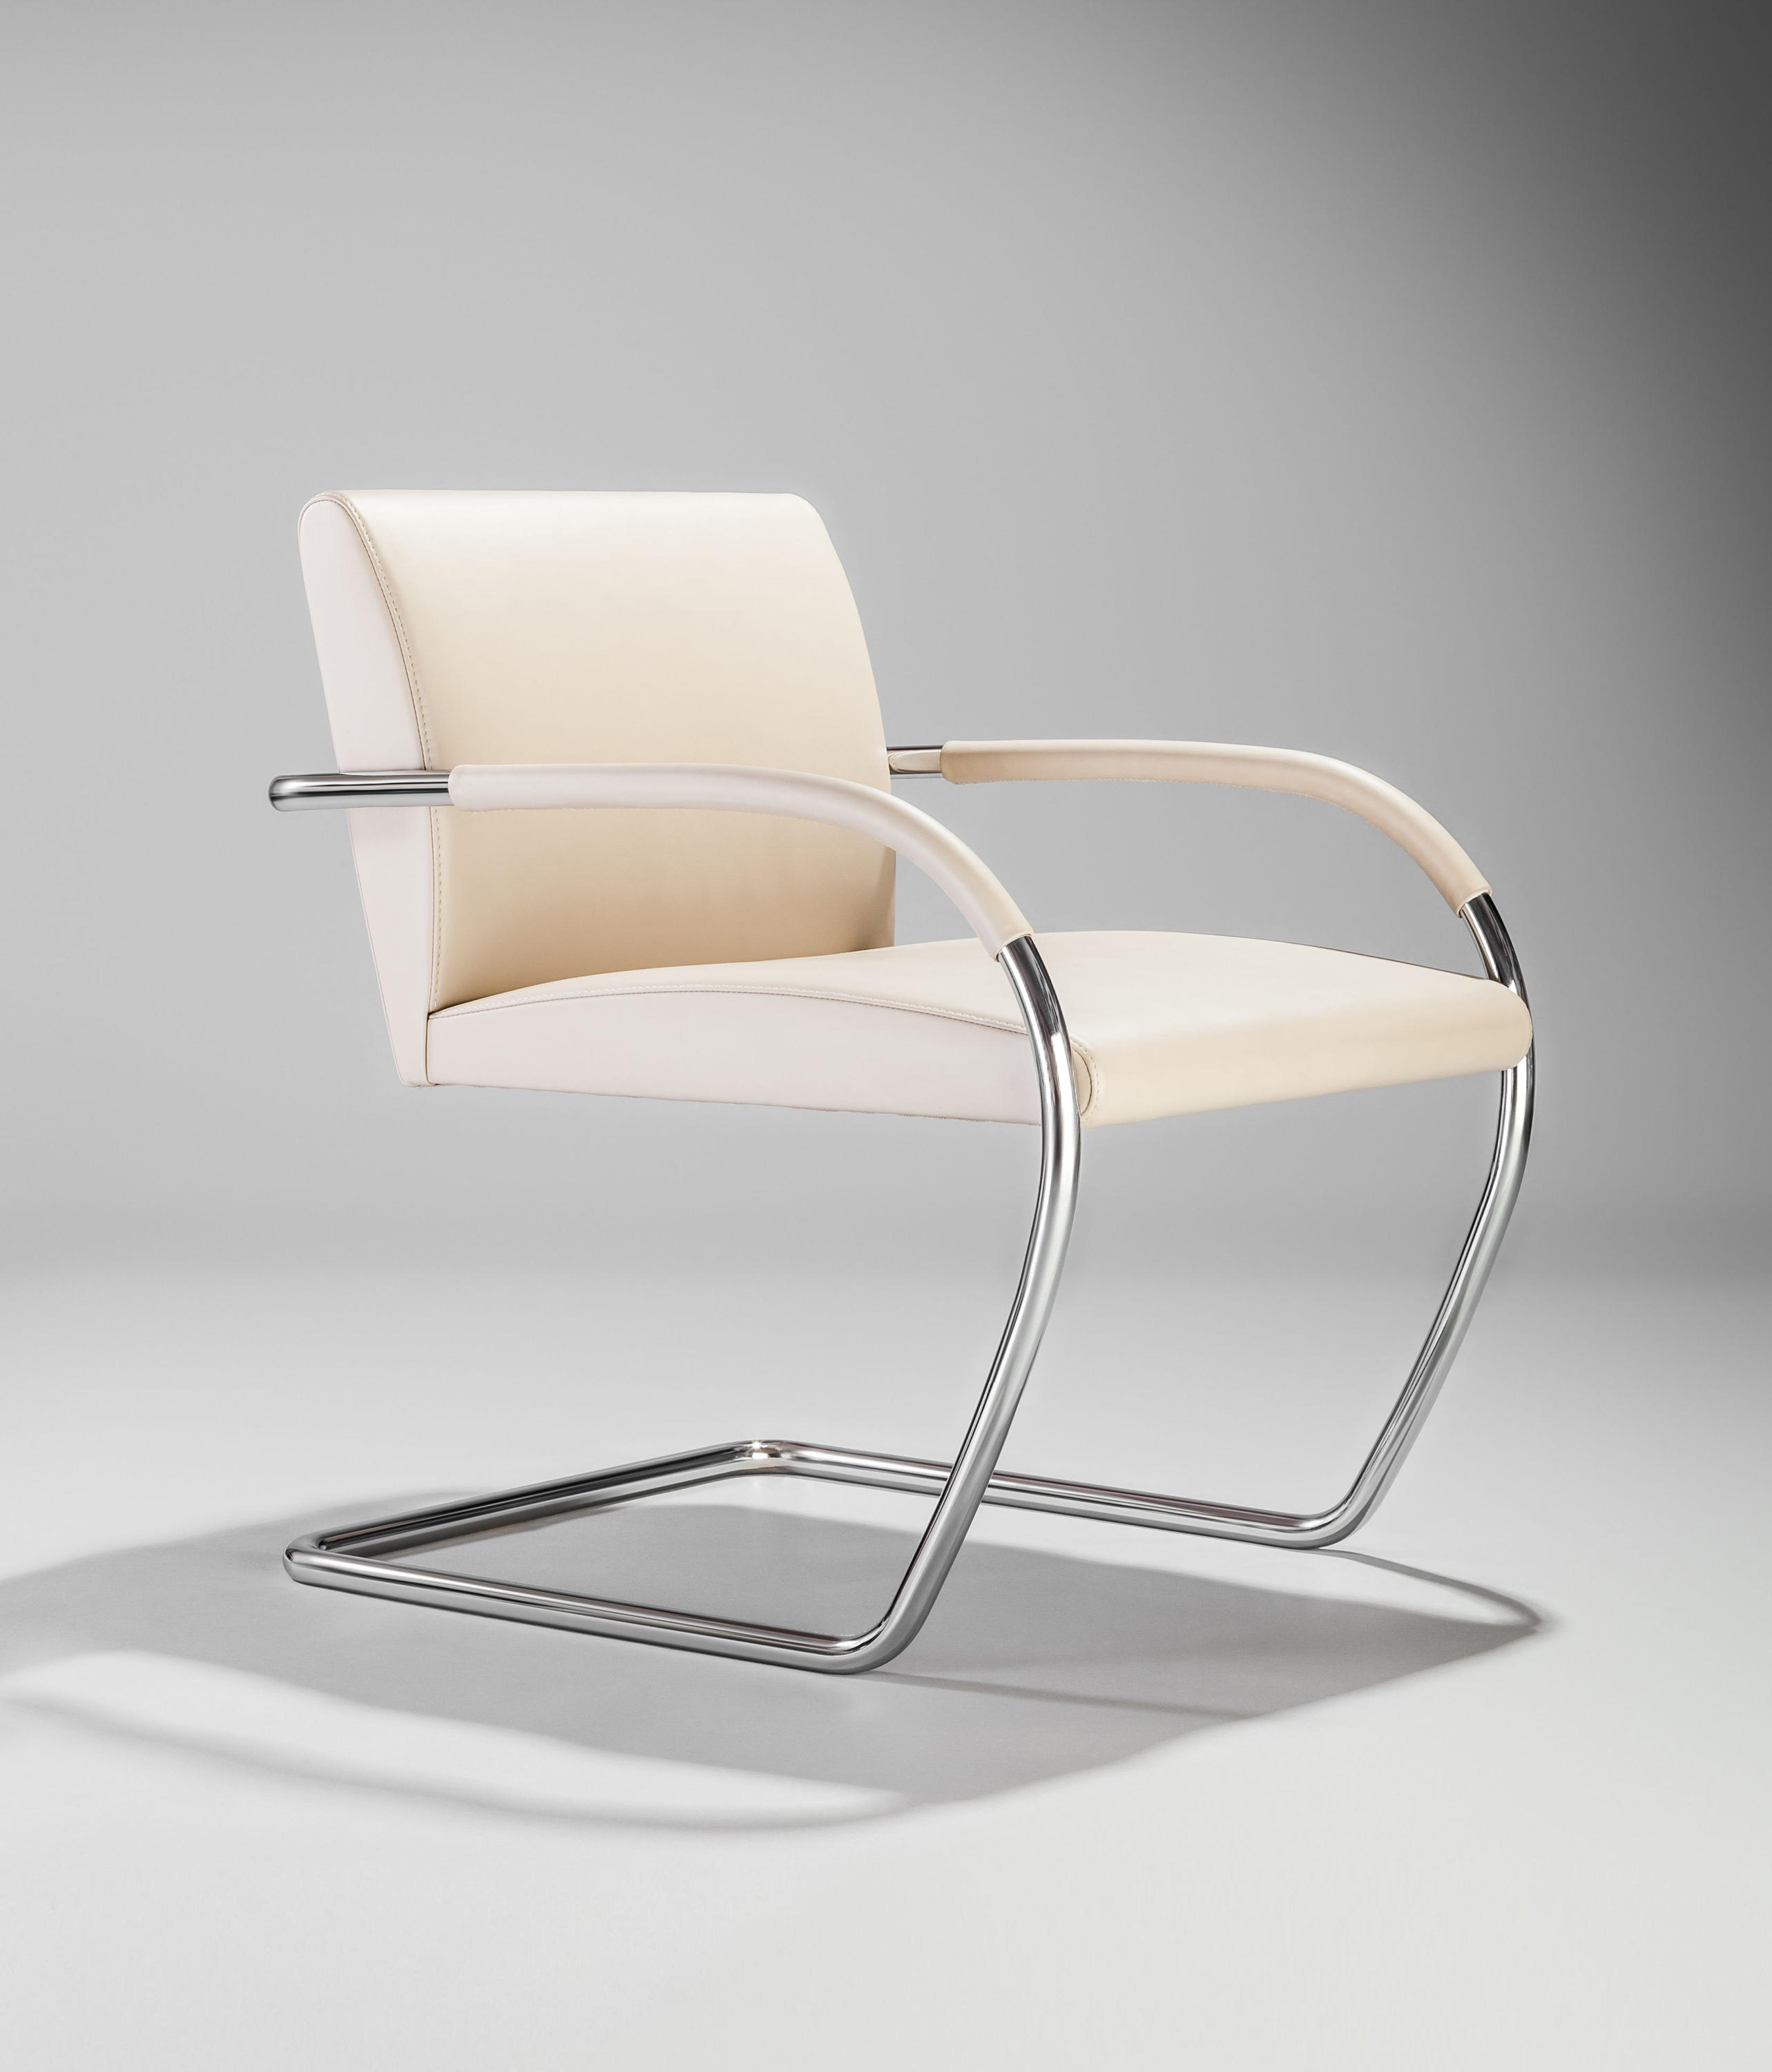 BRNO LOUNGE CHAIR Lounge chairs from AMOS DESIGN